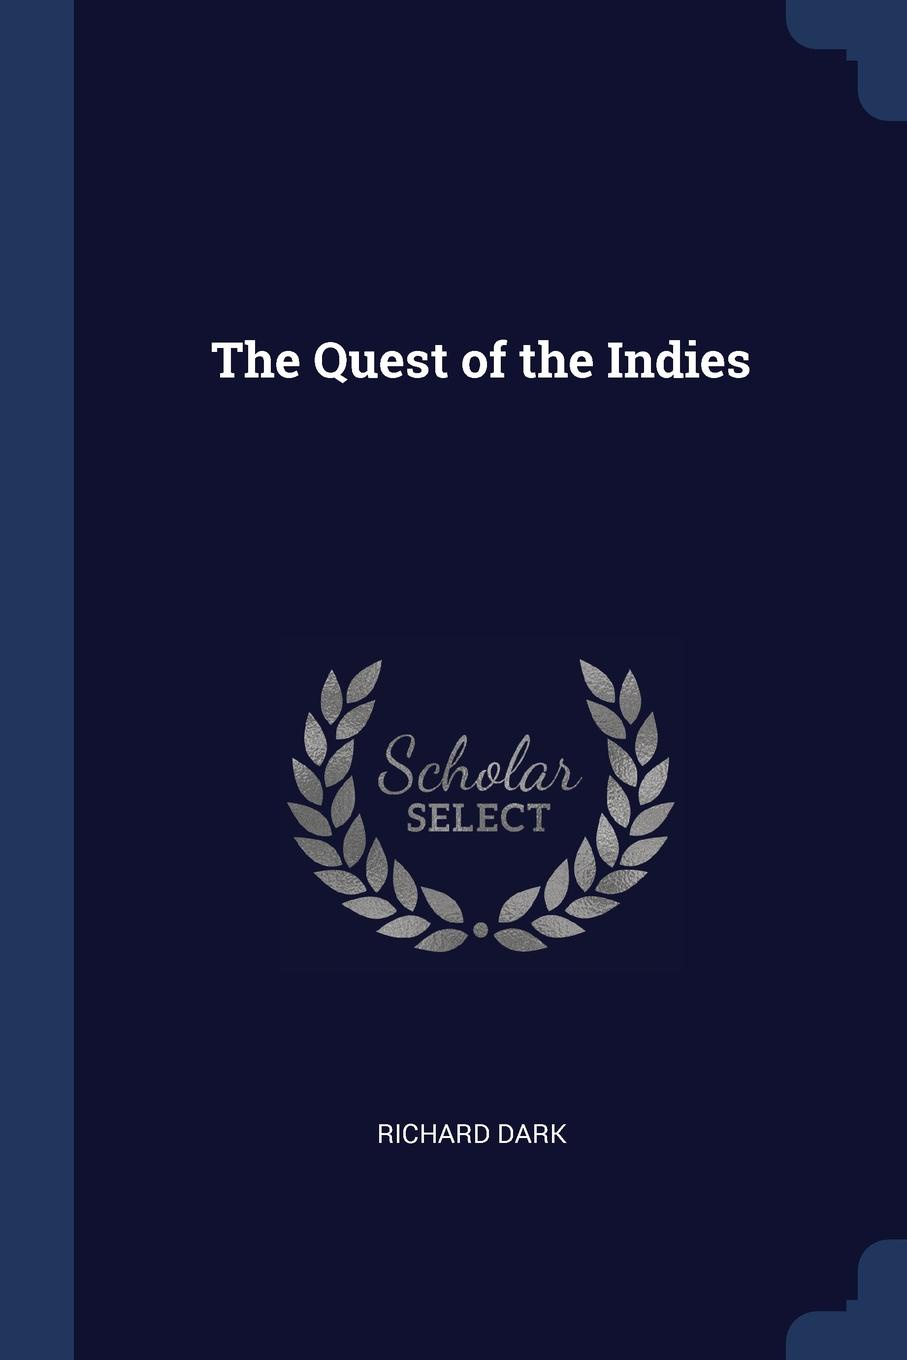 The Quest of the Indies. Richard Dark